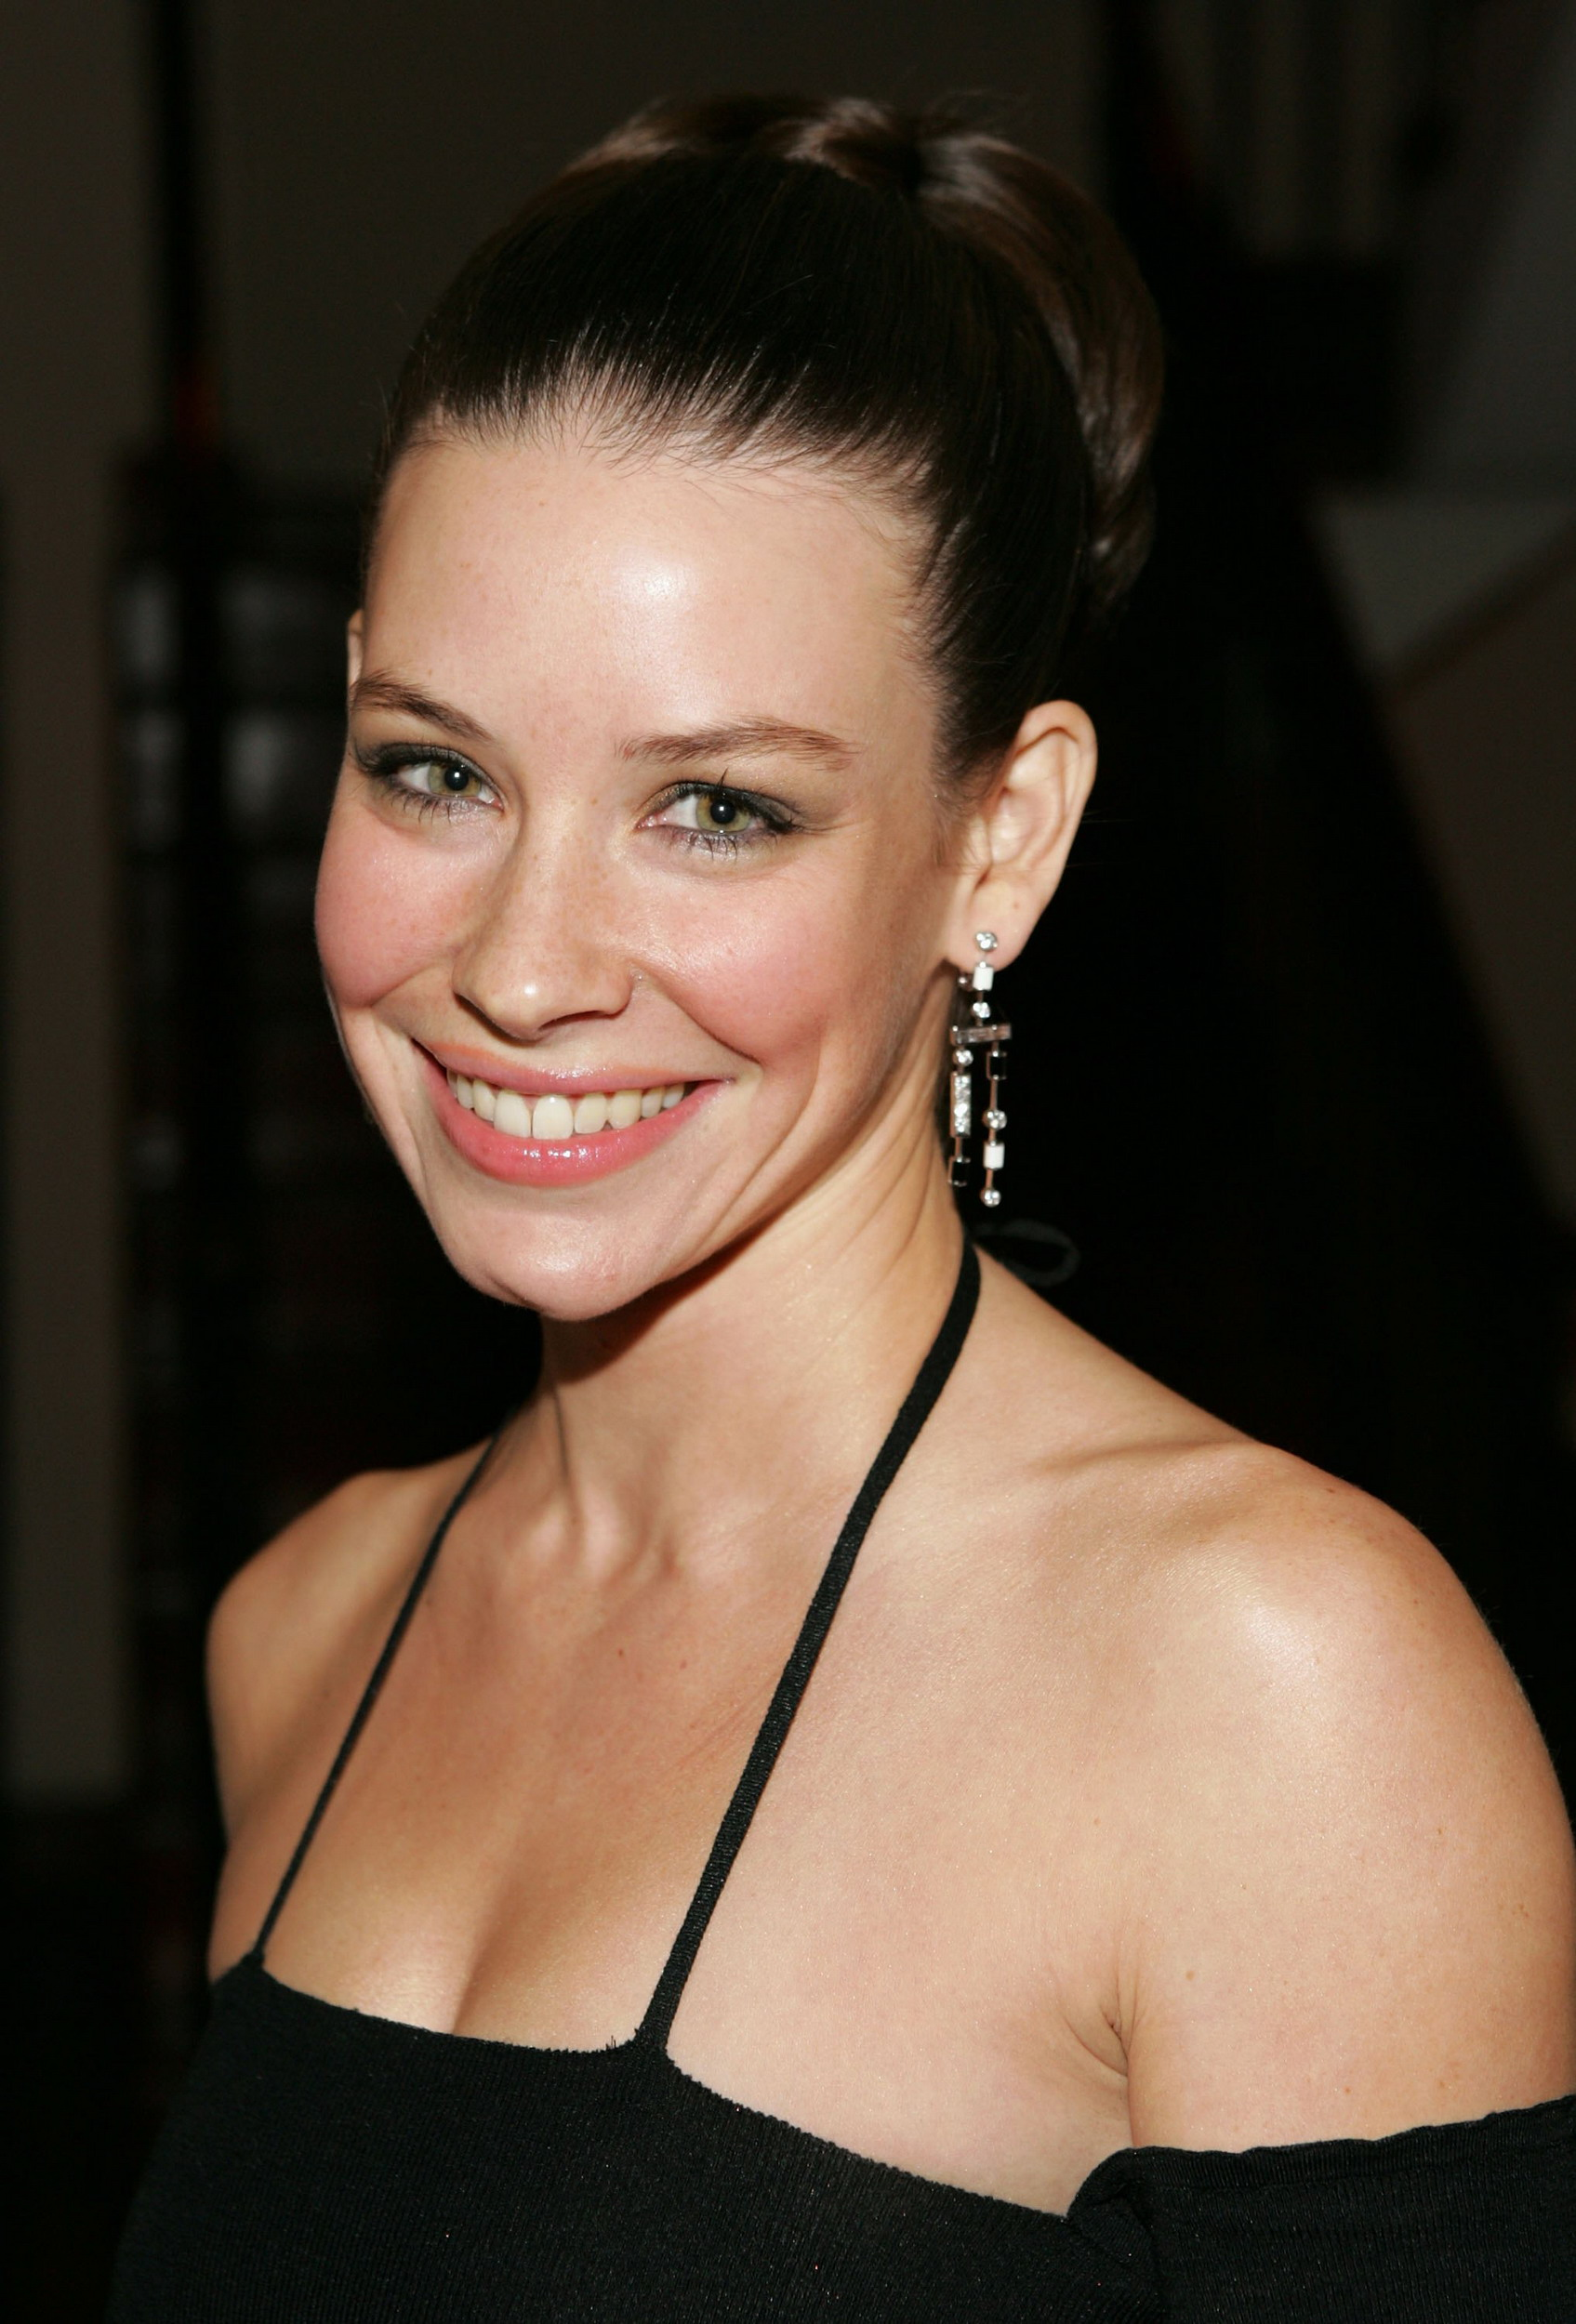 Celebrity evangeline lilly Actress HD Wallpaper